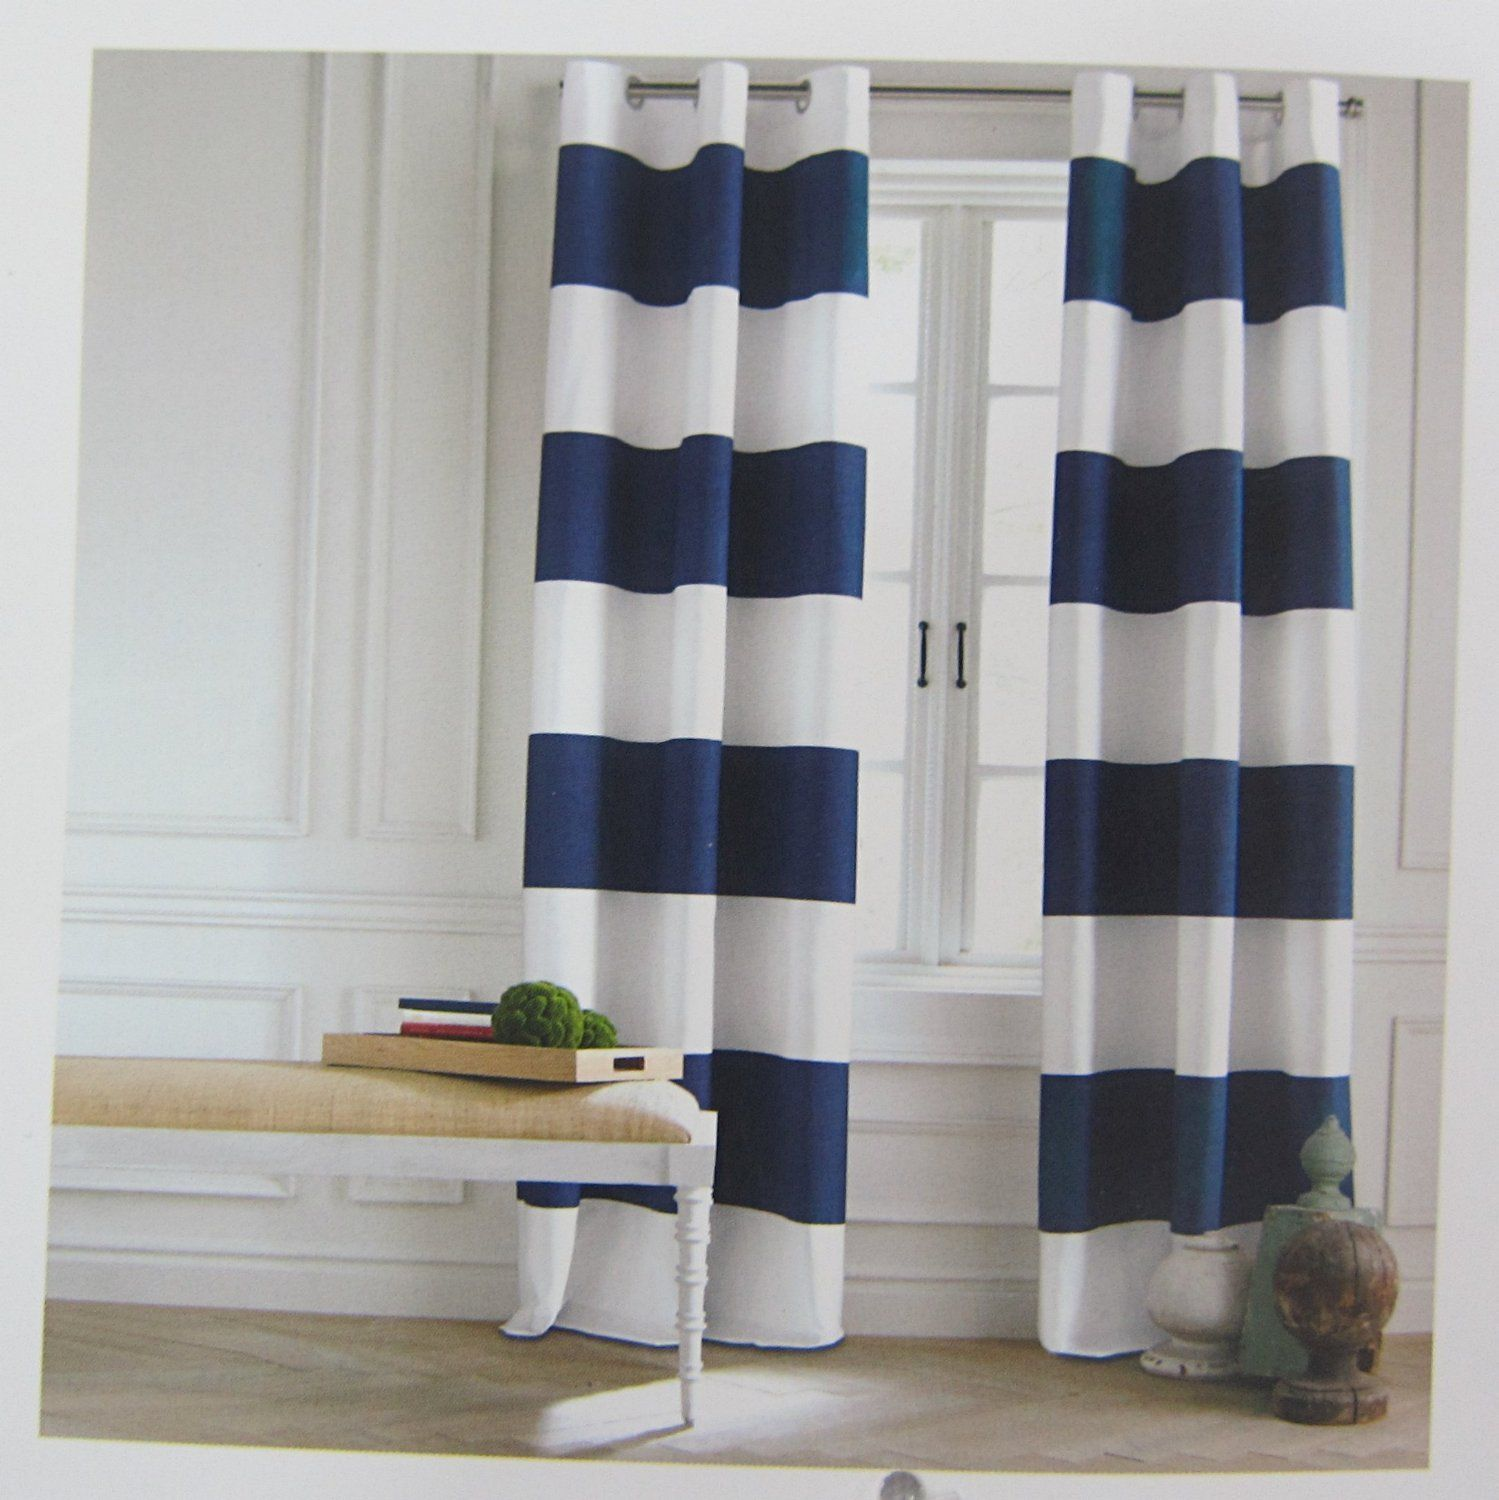 Great Tommy Hilfiger Cabana Stripe Curtains 2 Panels 50 By Eyelet Heading Modern  Window Drapes Cotton 2 Panels Grommet Top Navy Blue White Wide Stripes